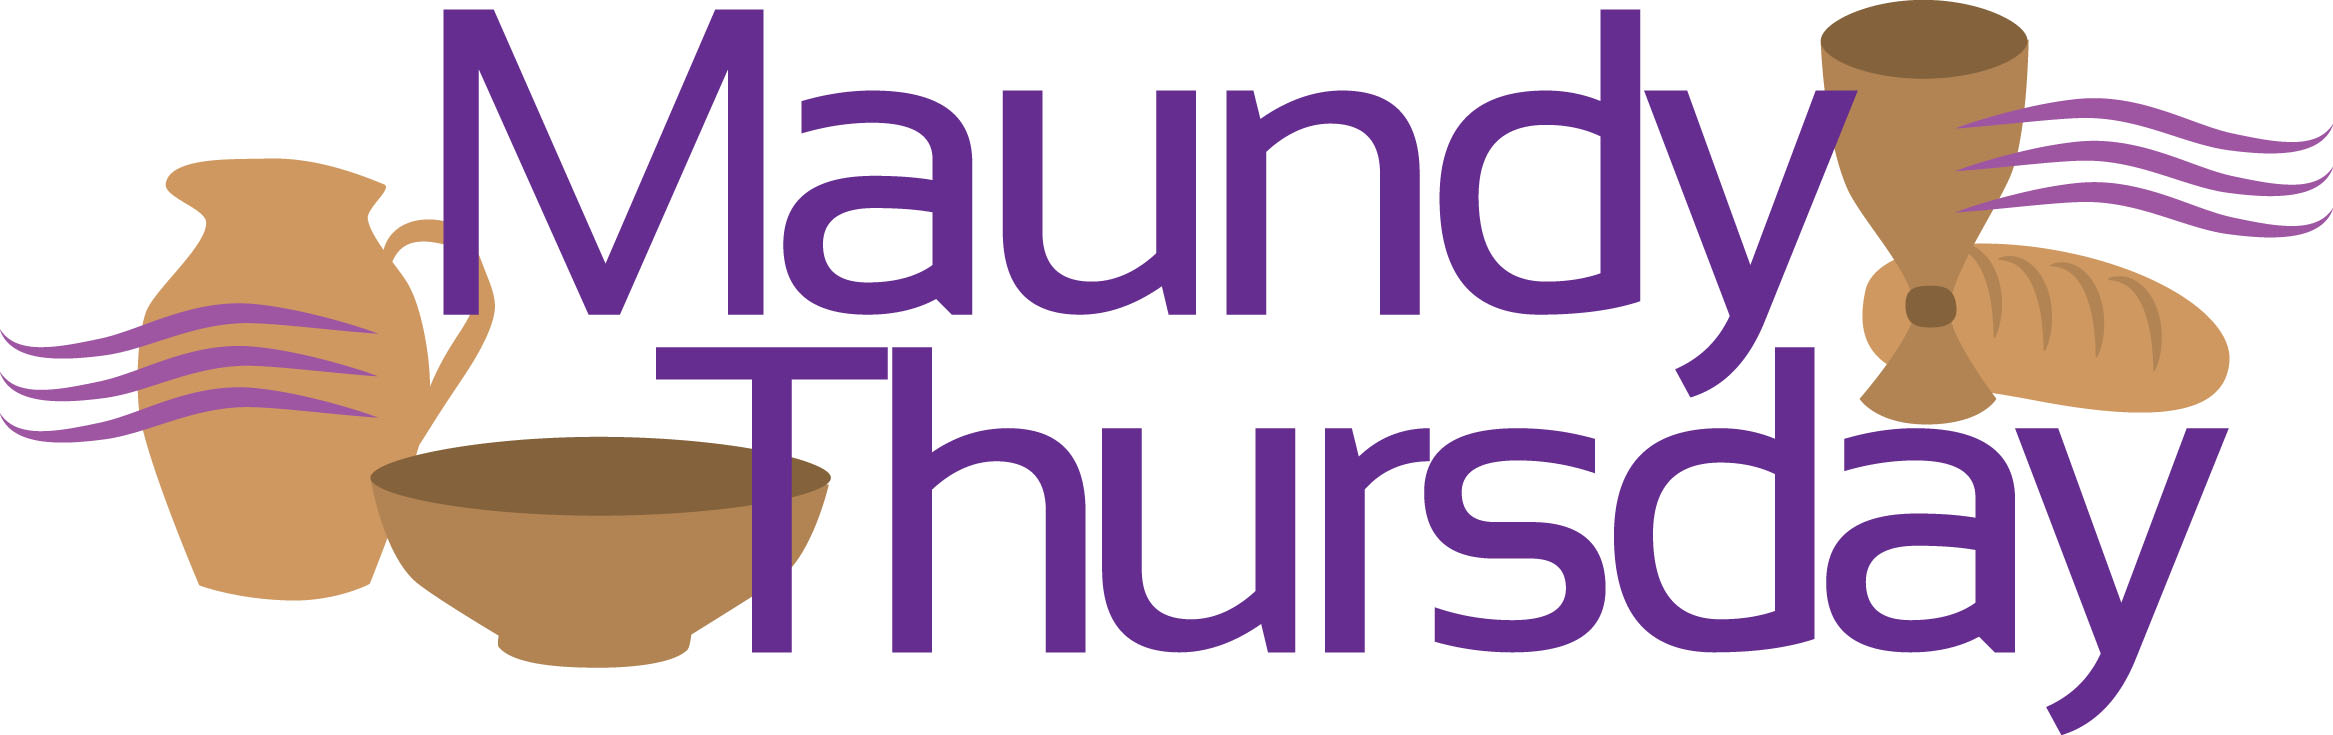 59+ Maundy Thursday Clipart.